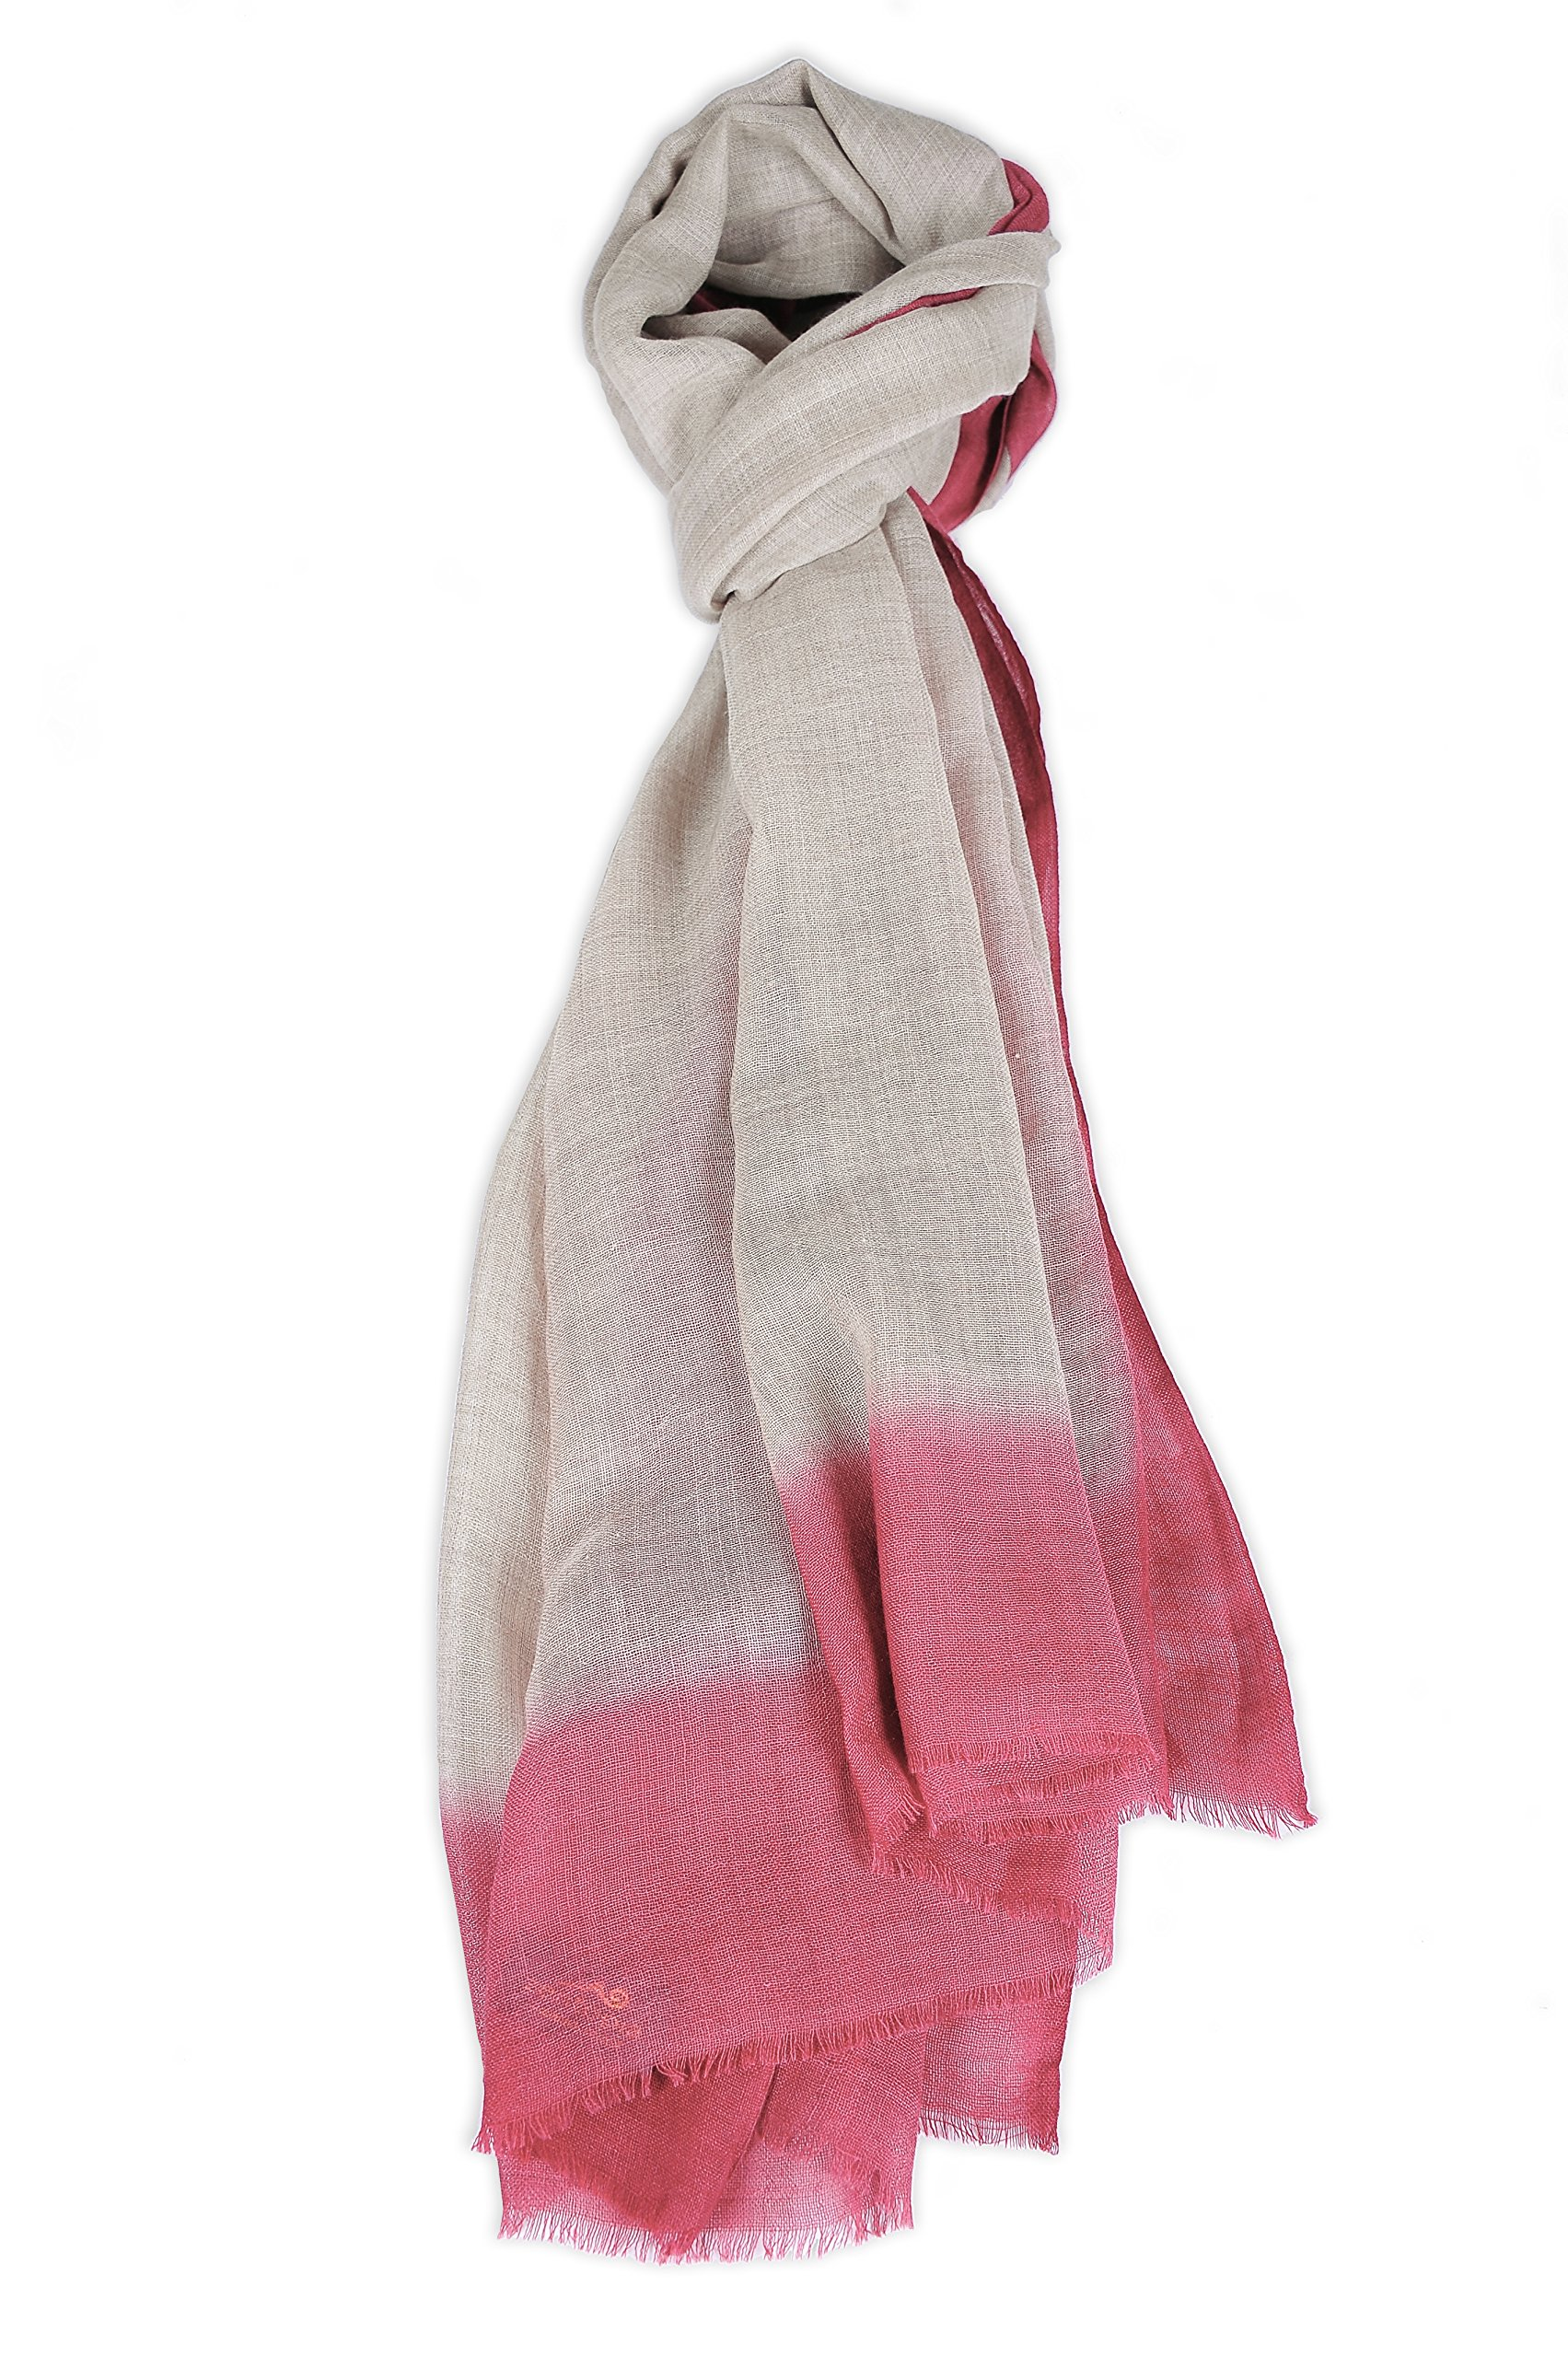 Zentopia cashmere blend handmade hand dye scarf ink style ultra light weight (Red) by Zentopia